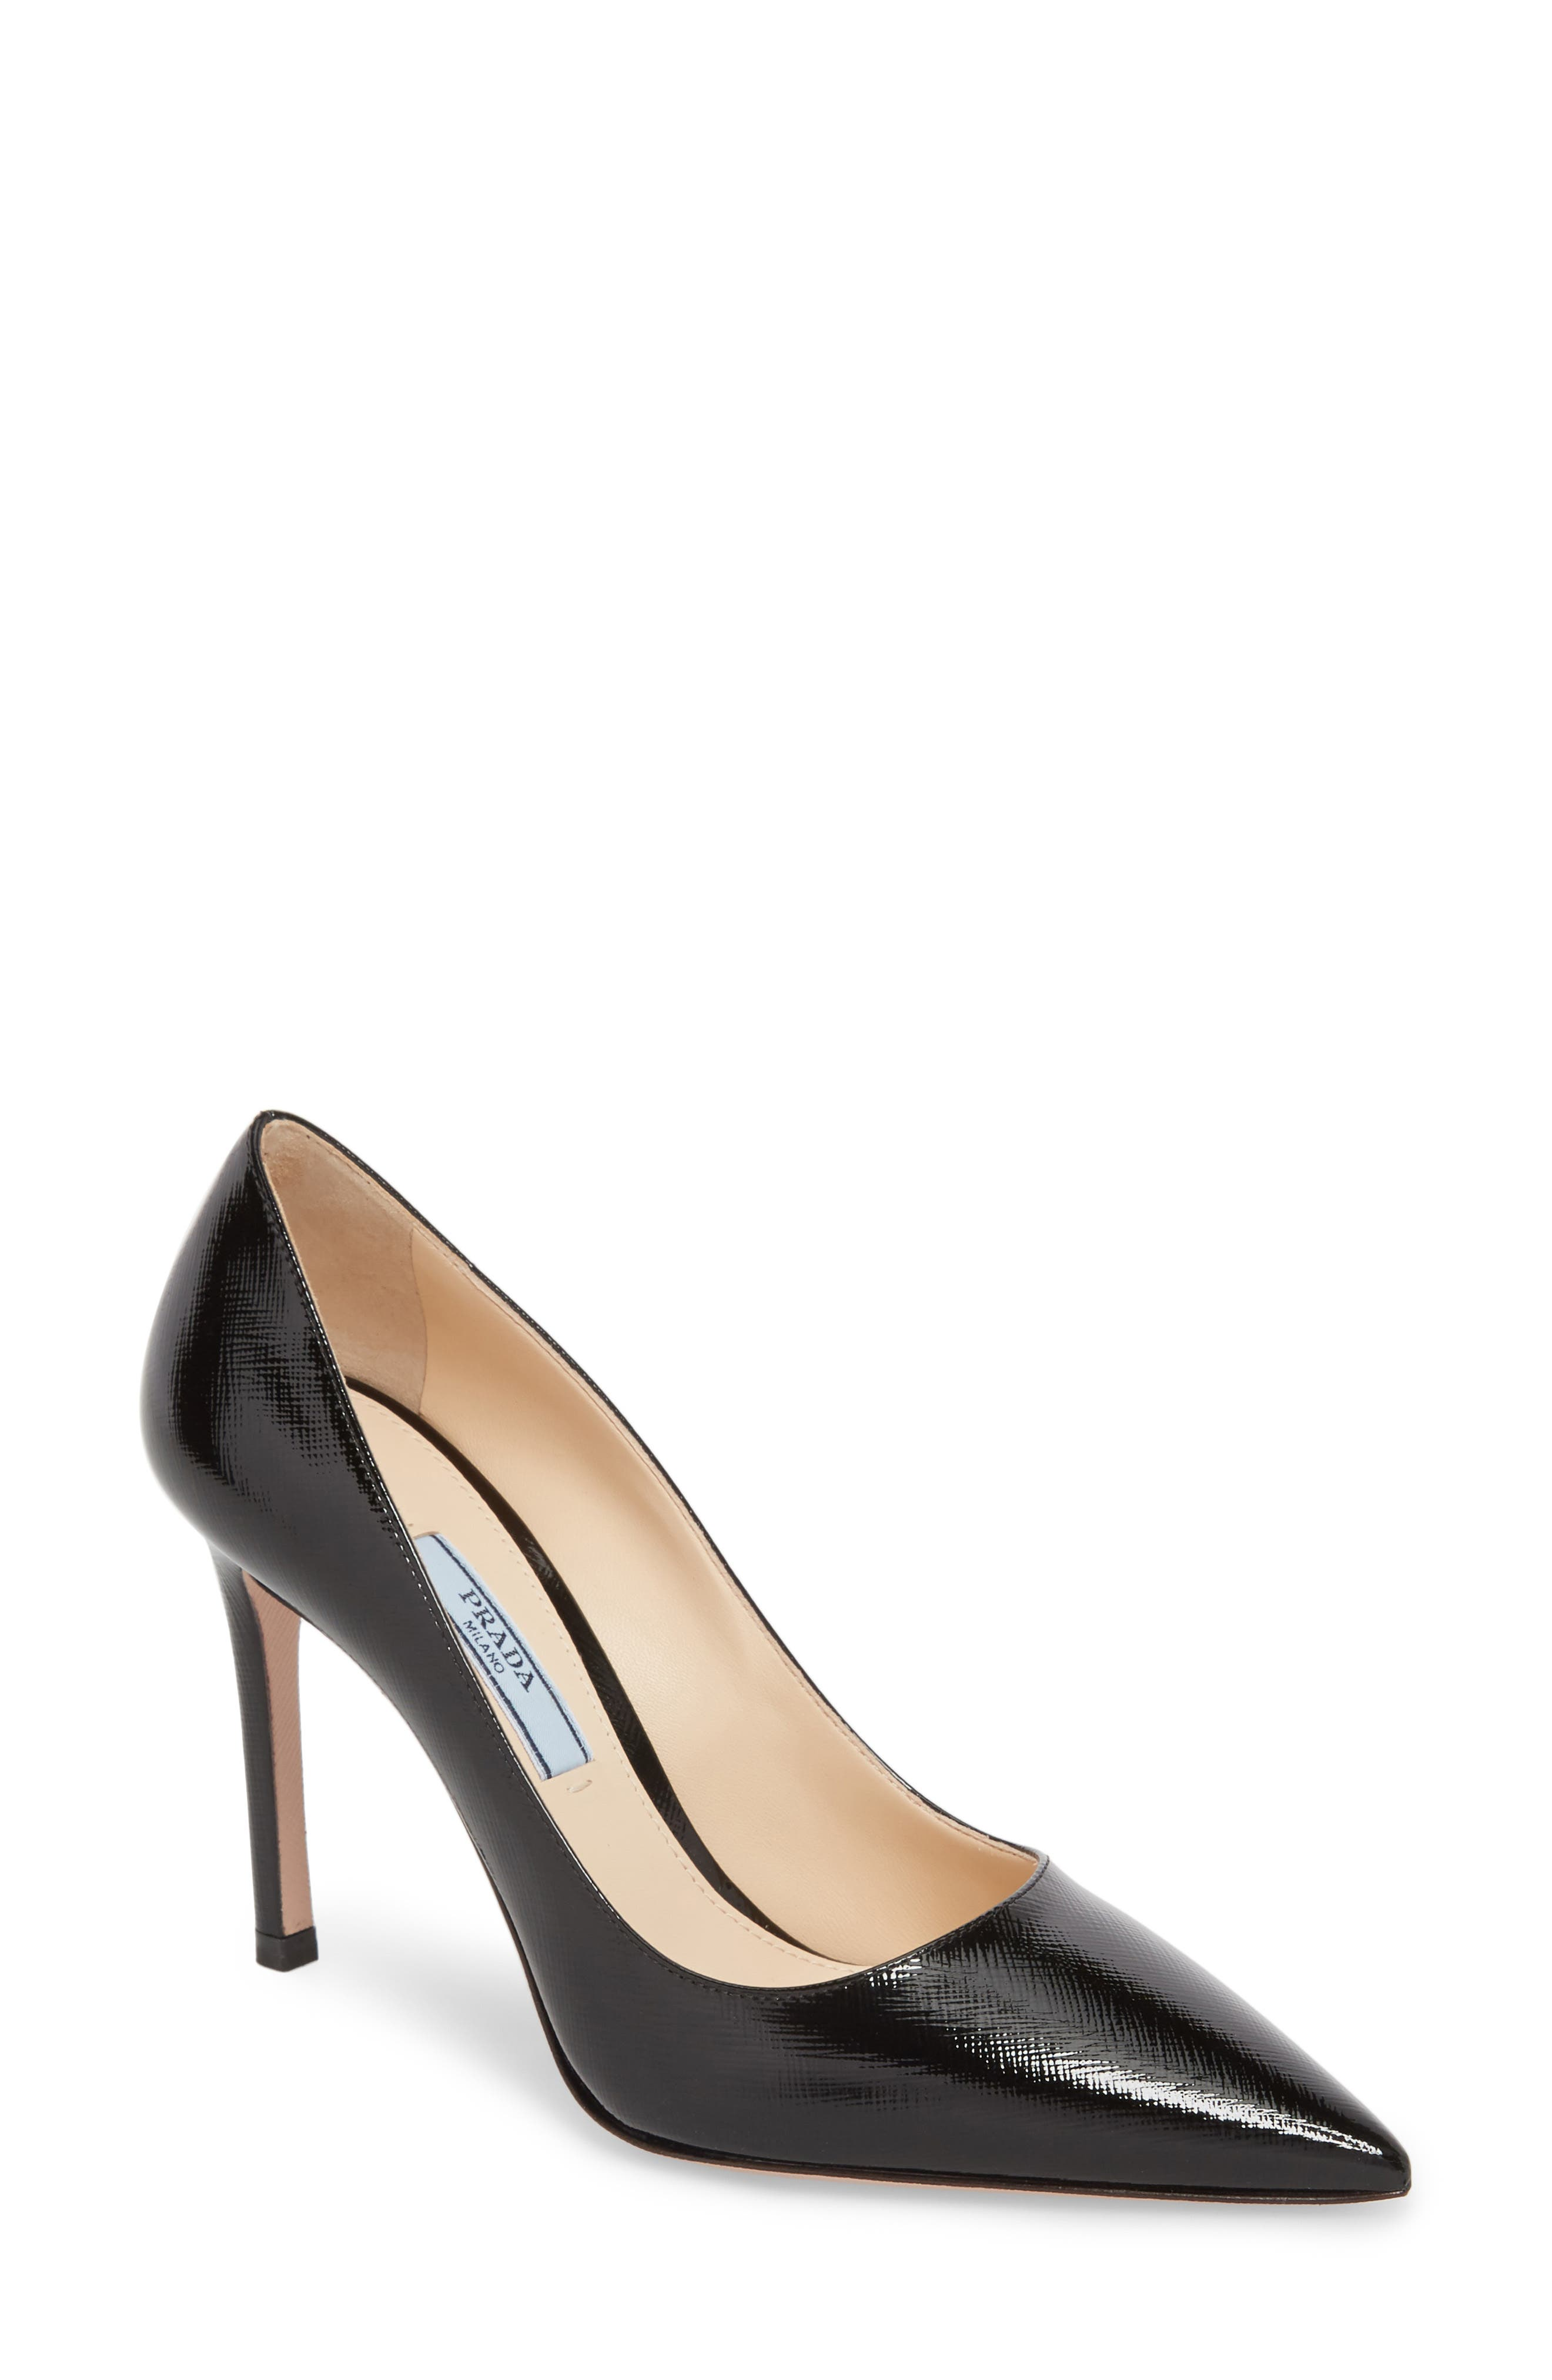 PRADA Pointy Toe Pump, Main, color, BLACK